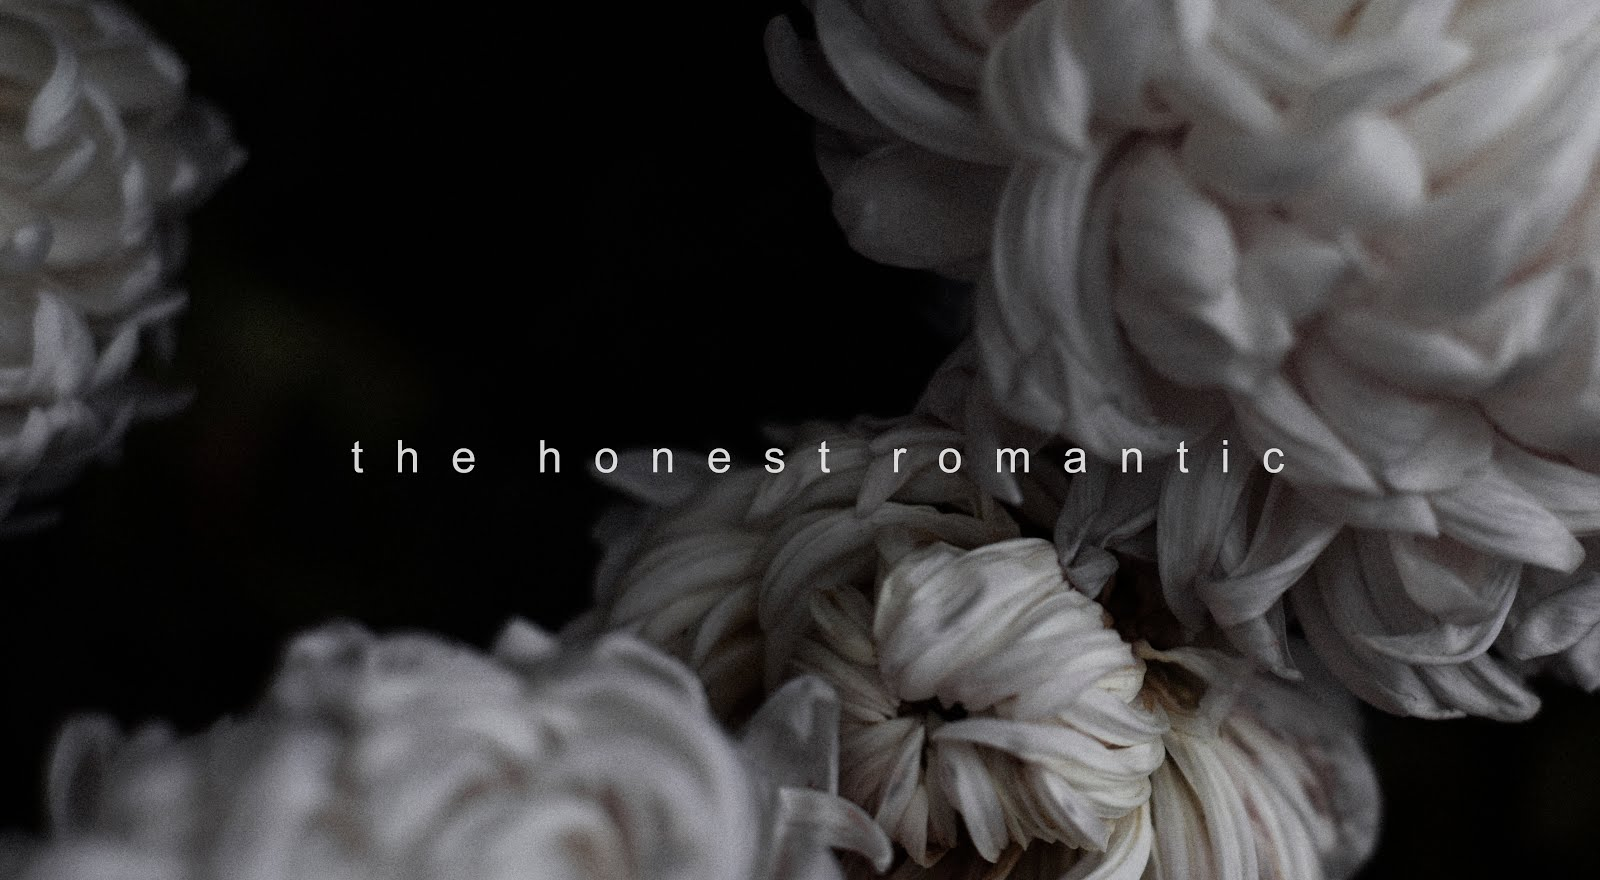 The Honest Romantic